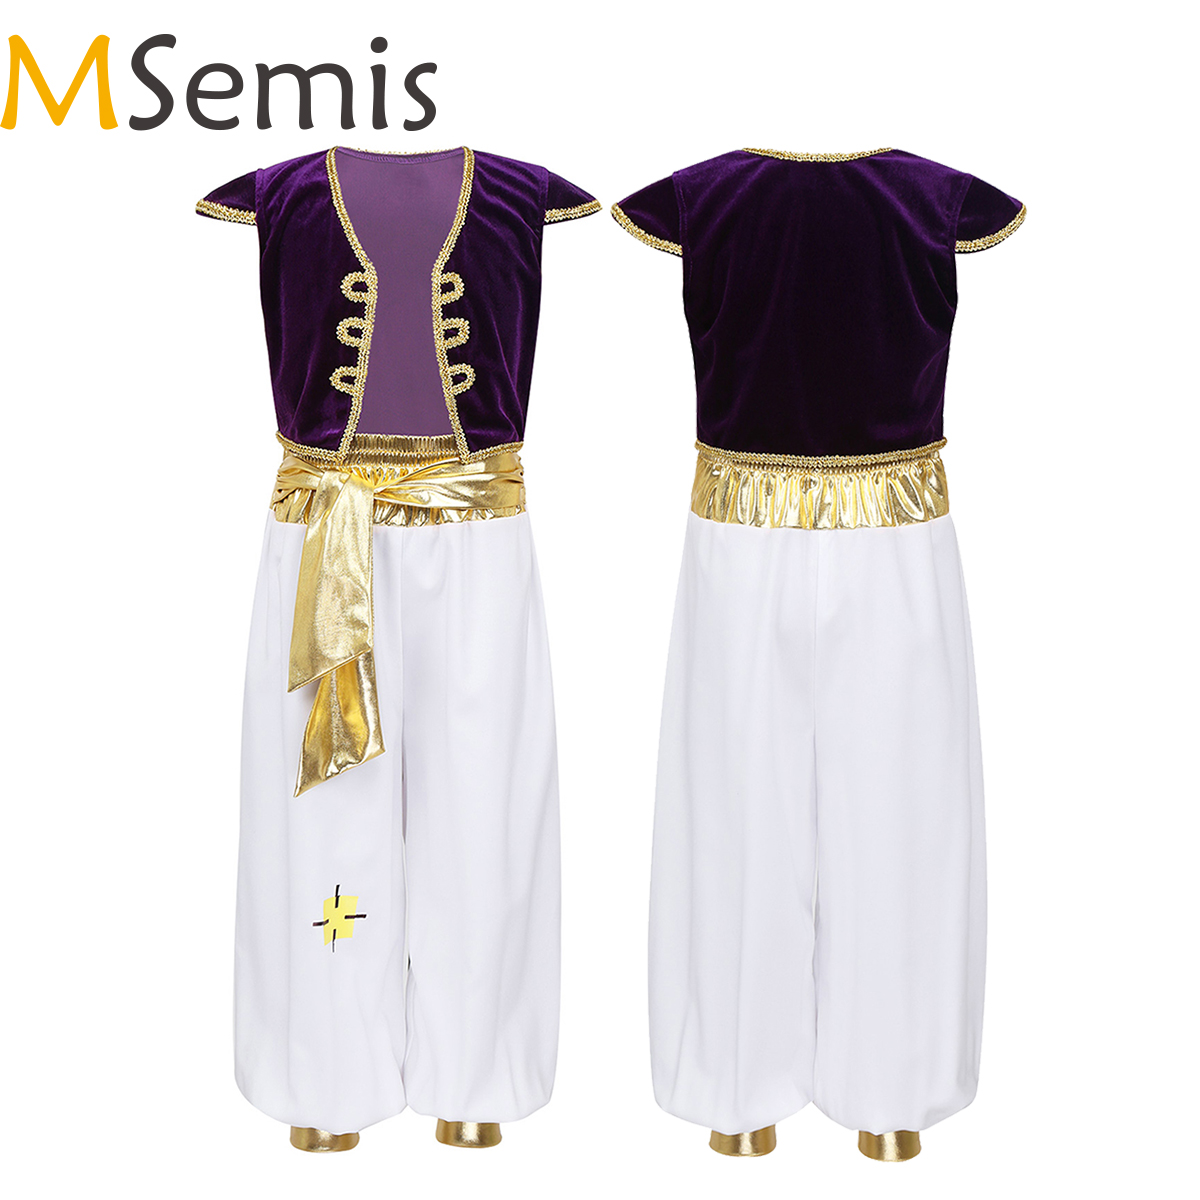 MSemis Kids Boys Fancy Arabian Prince Costumes Cap Sleeves Waistcoat With Pants For Halloween Cosplay Fairy Parties Dress Up